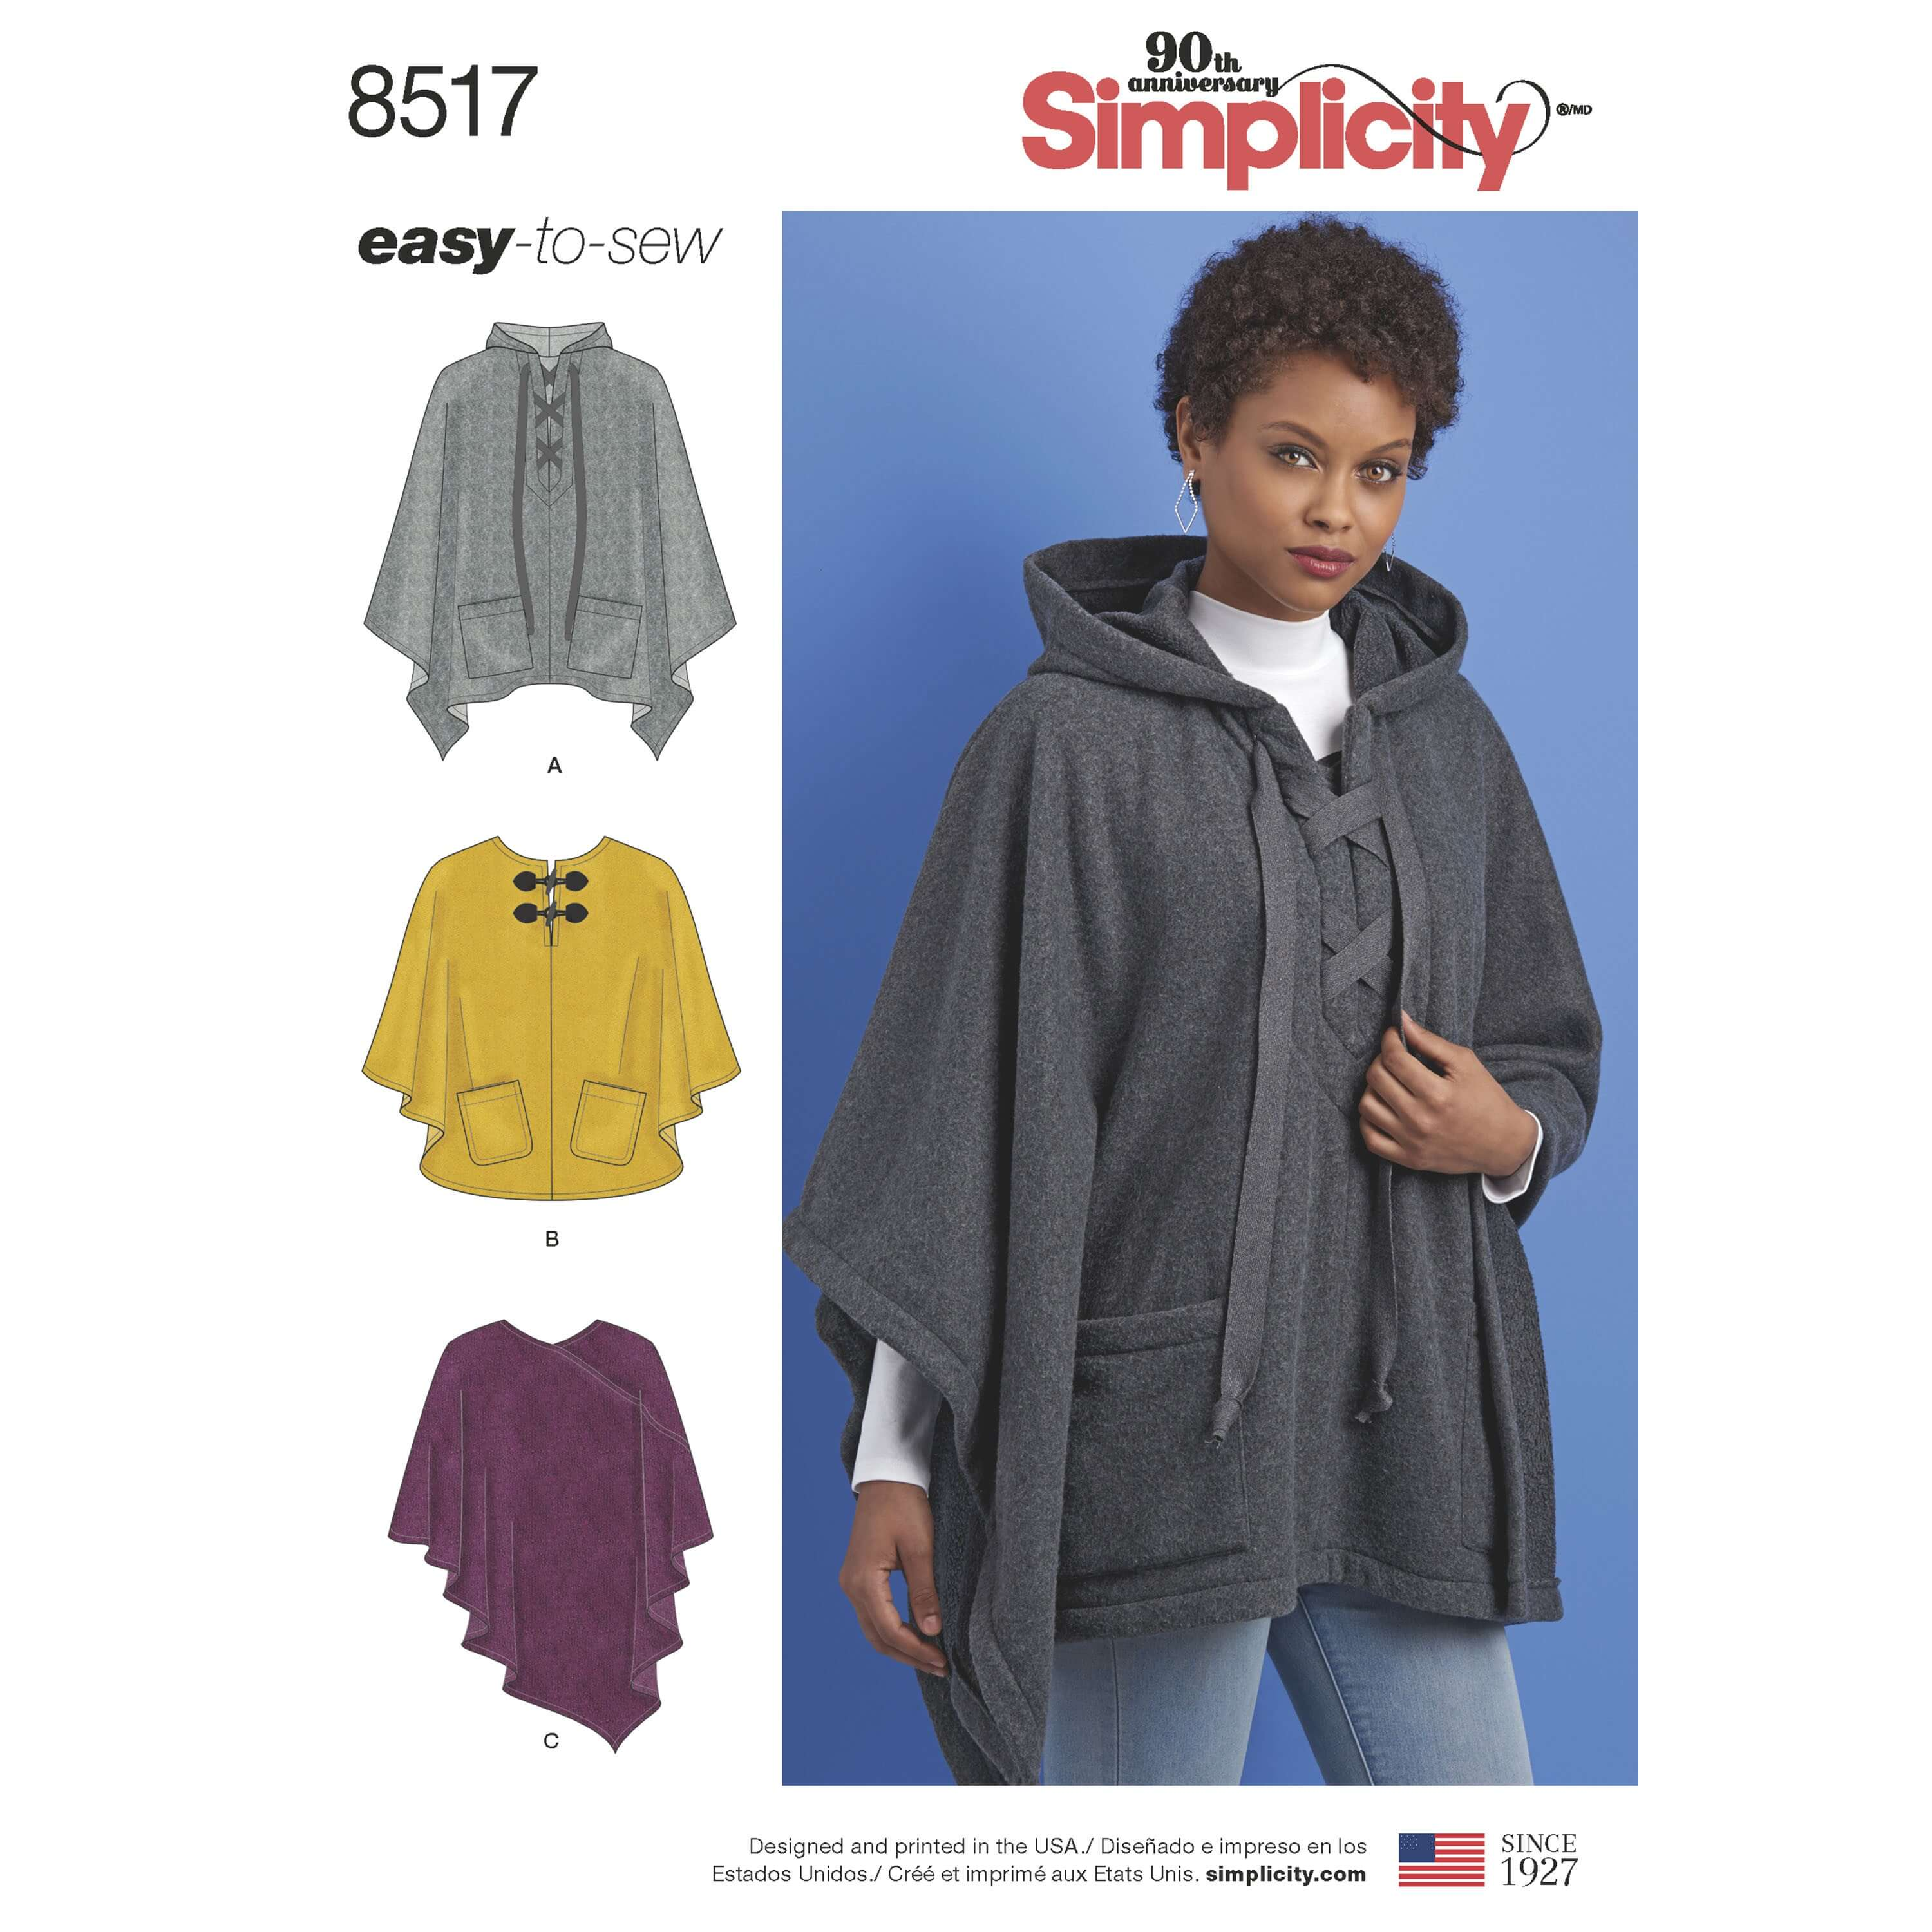 Simplicity Sewing Pattern 8517 Women's Set of Ponchos Easy to Sew